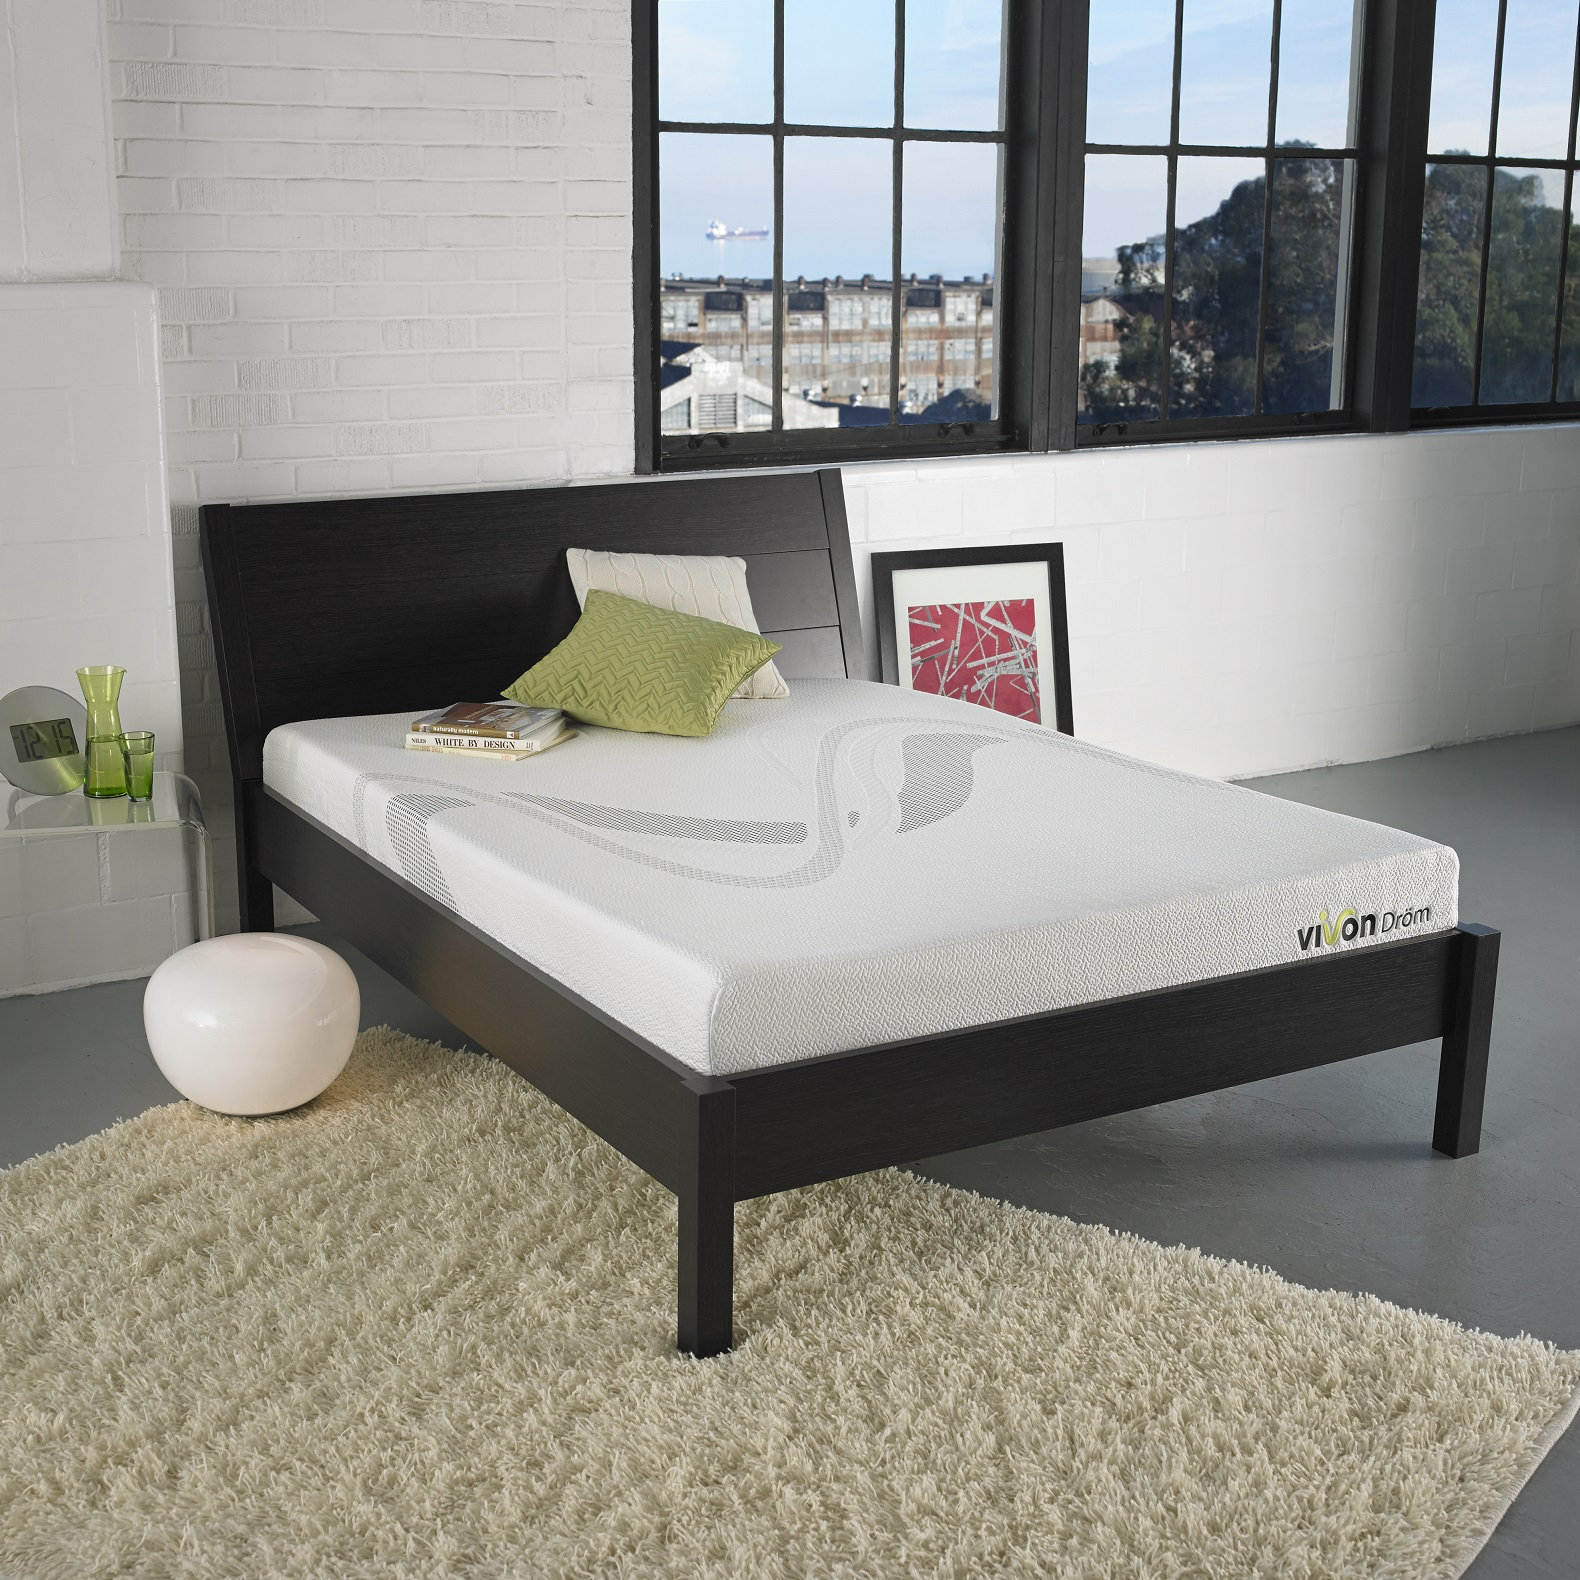 Baby Mattress Kmart Drom 8 Quot Memory Foam Mattress Only Twin Mattresses At Sears